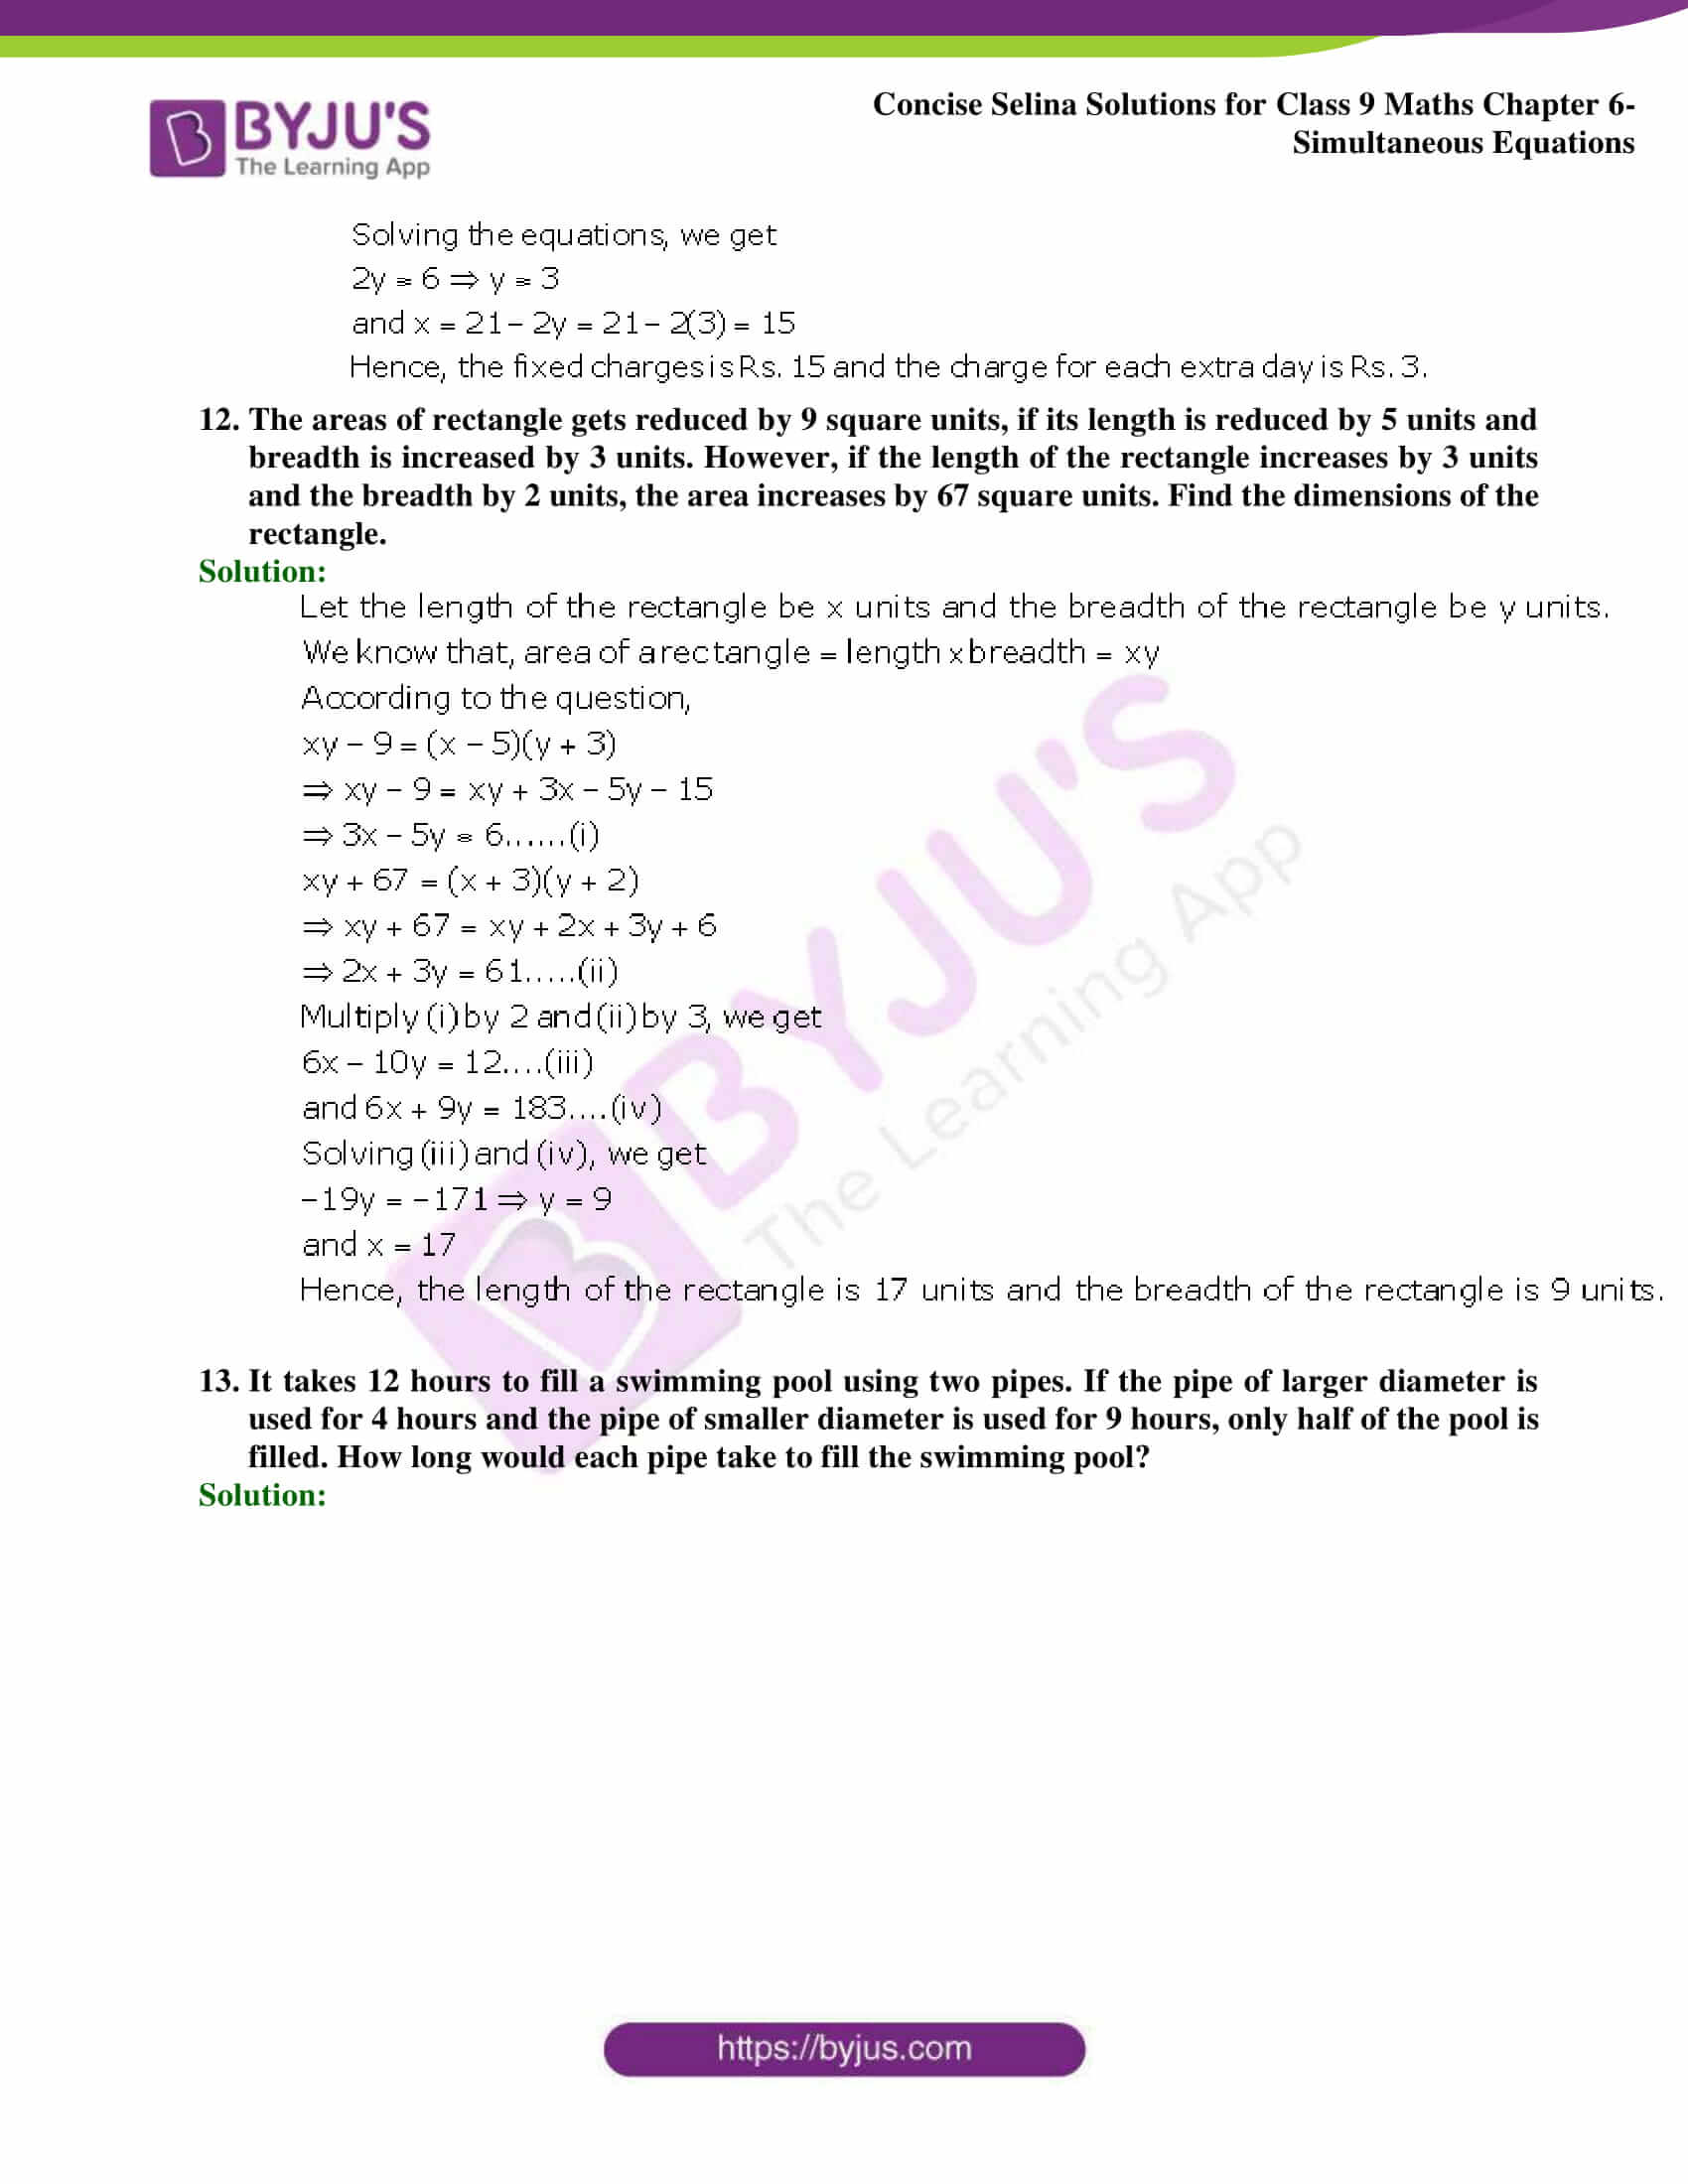 Selina Solutions Class 9 Maths Chapter 6 Simultaneous Equations part 59